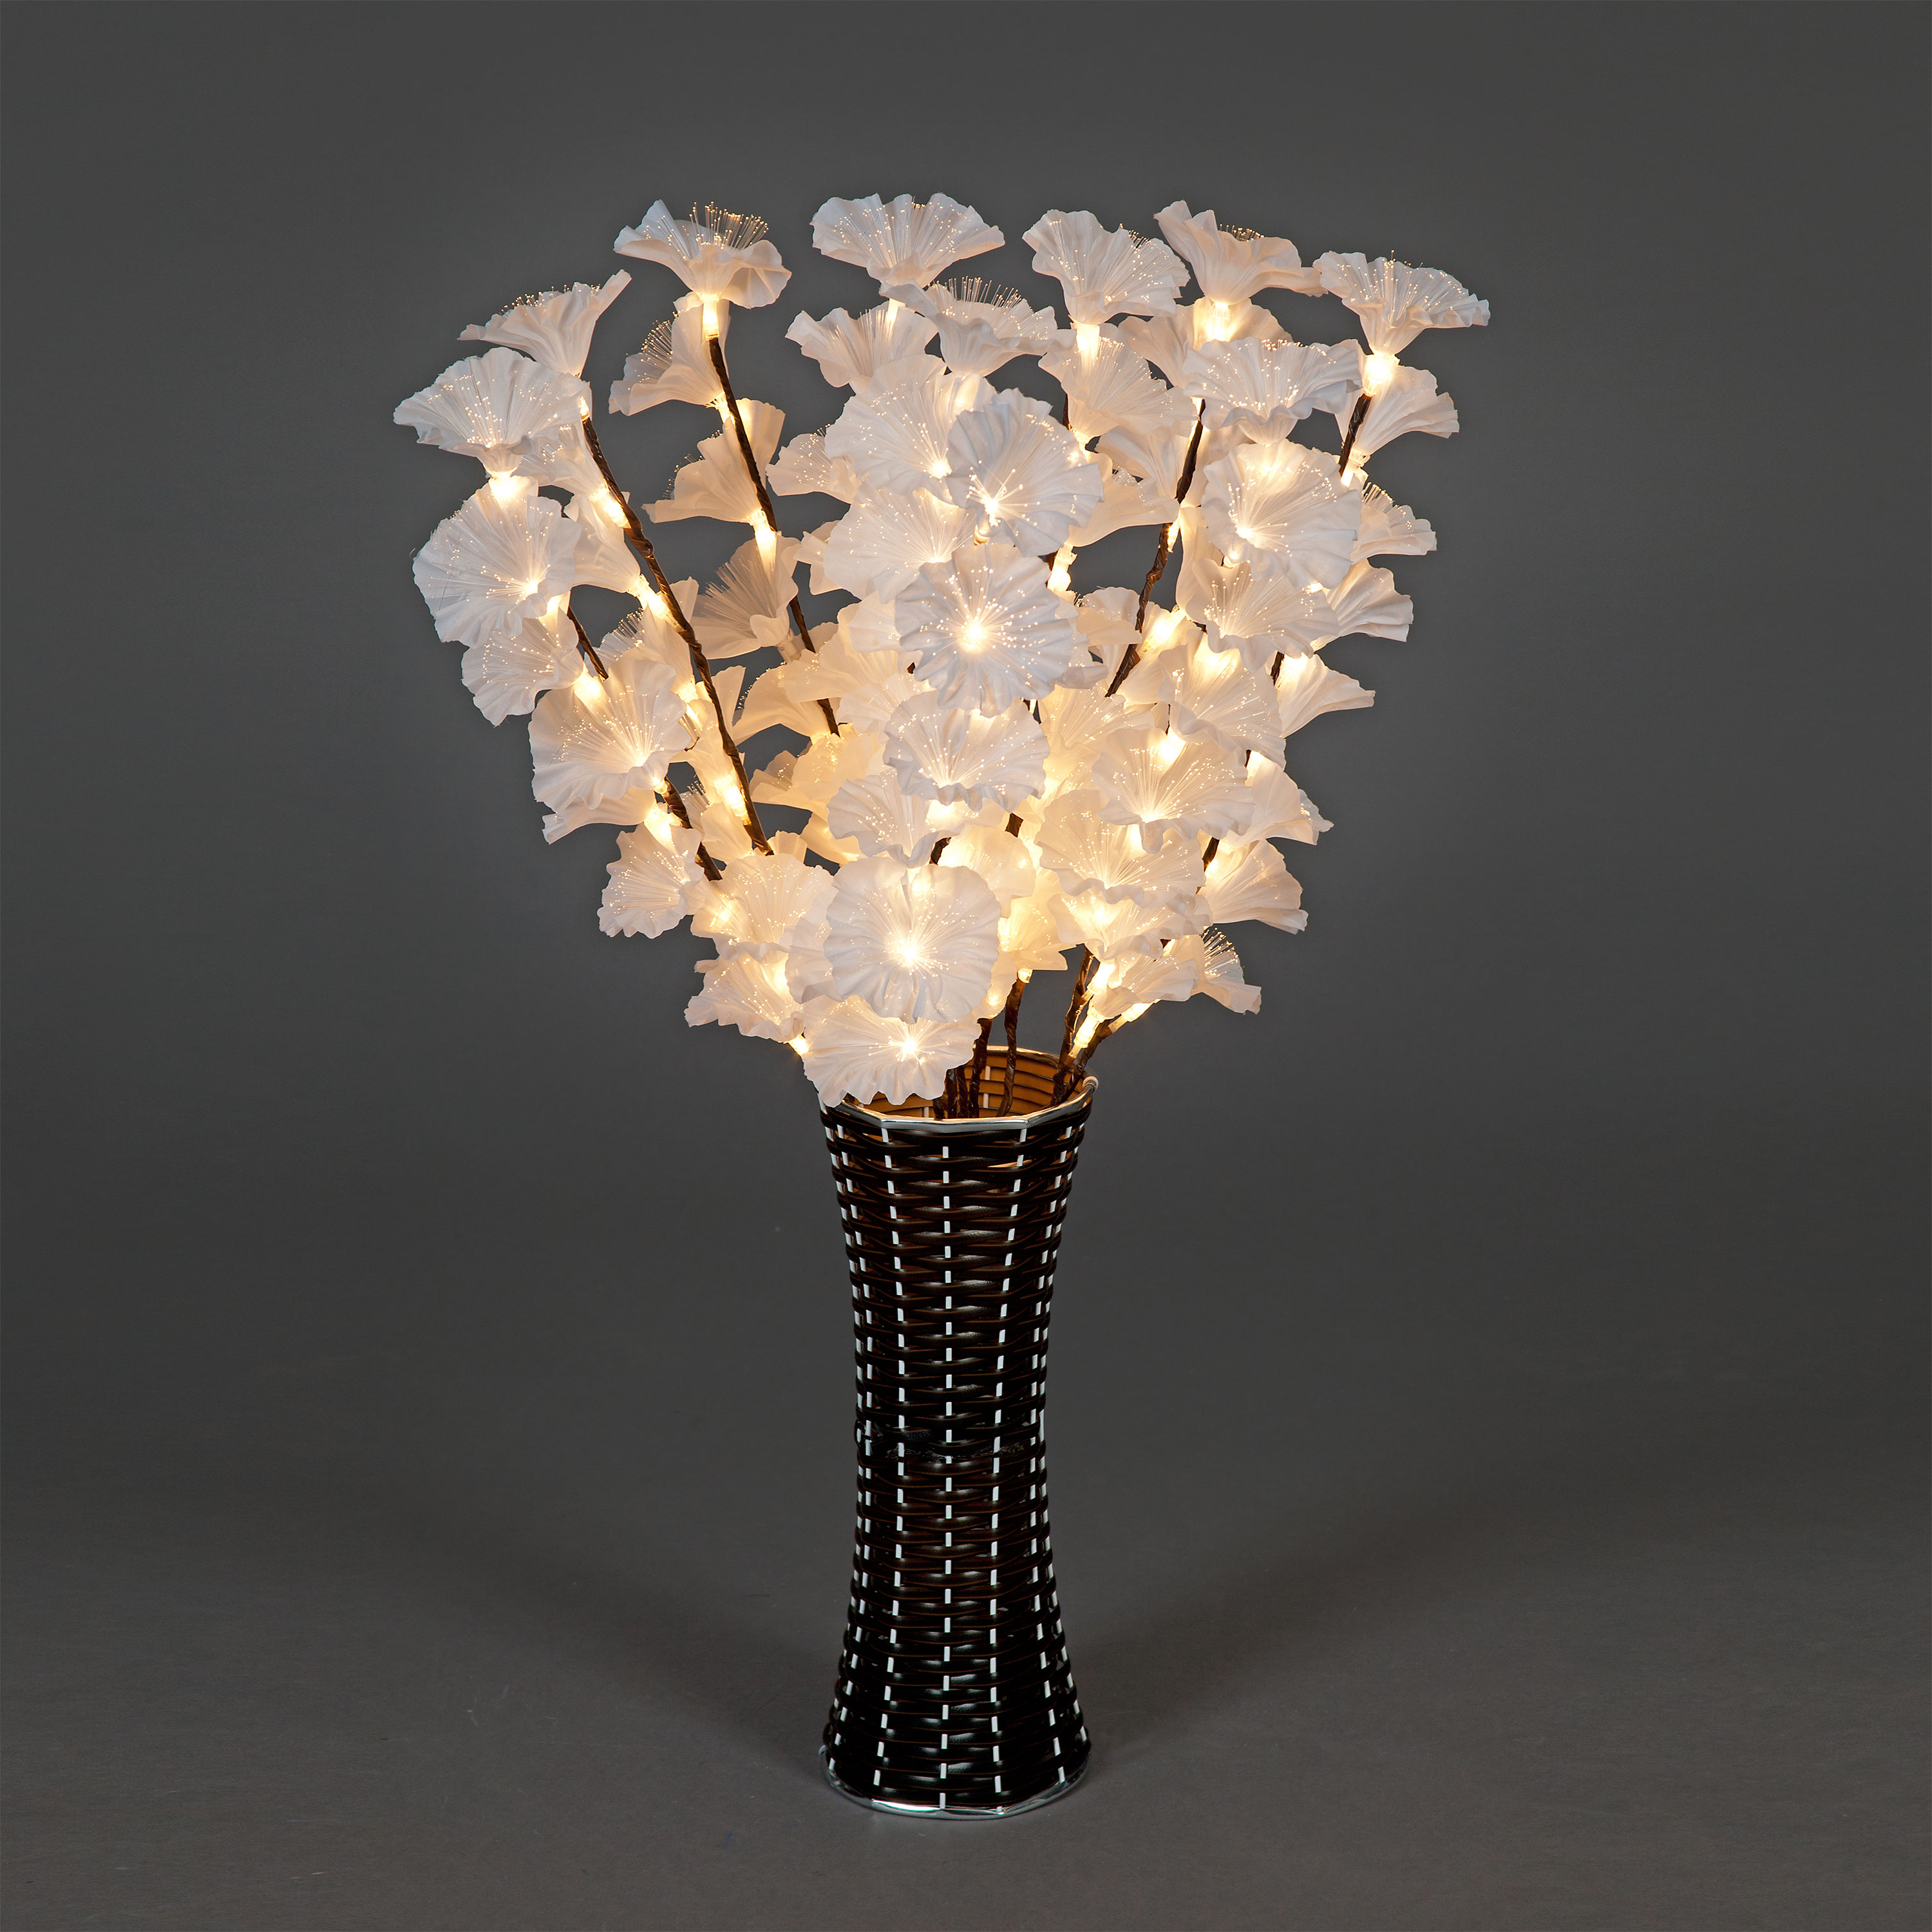 Christmas Trees and Lights Magnolia 80cm Warm White Fibre-Optic Vase